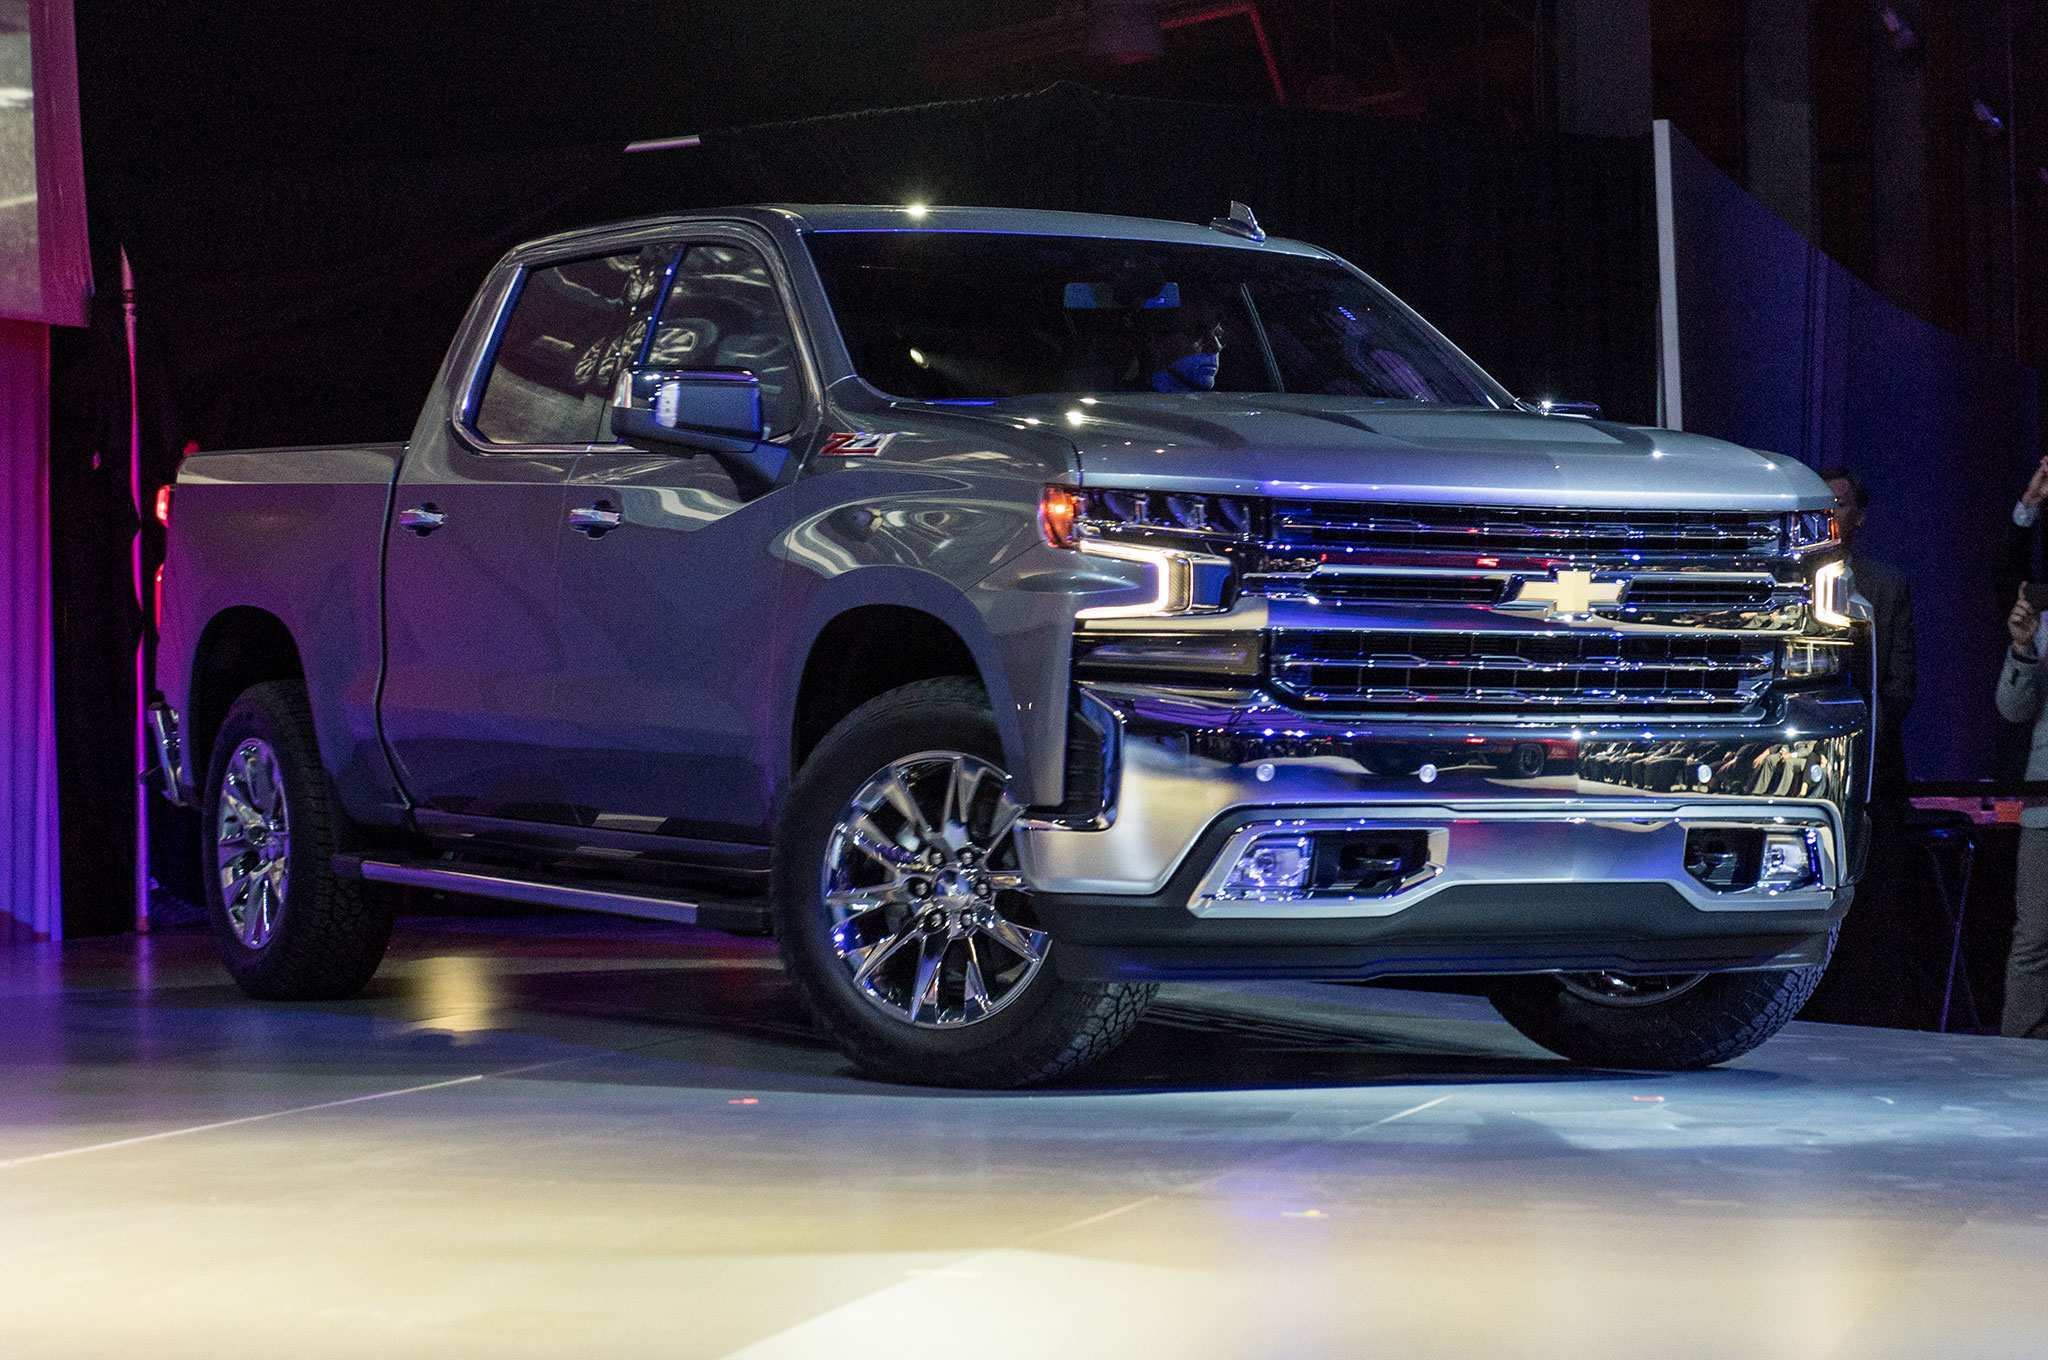 97 All New 2020 Chevrolet Silverado 1500 Ld Images for 2020 Chevrolet Silverado 1500 Ld